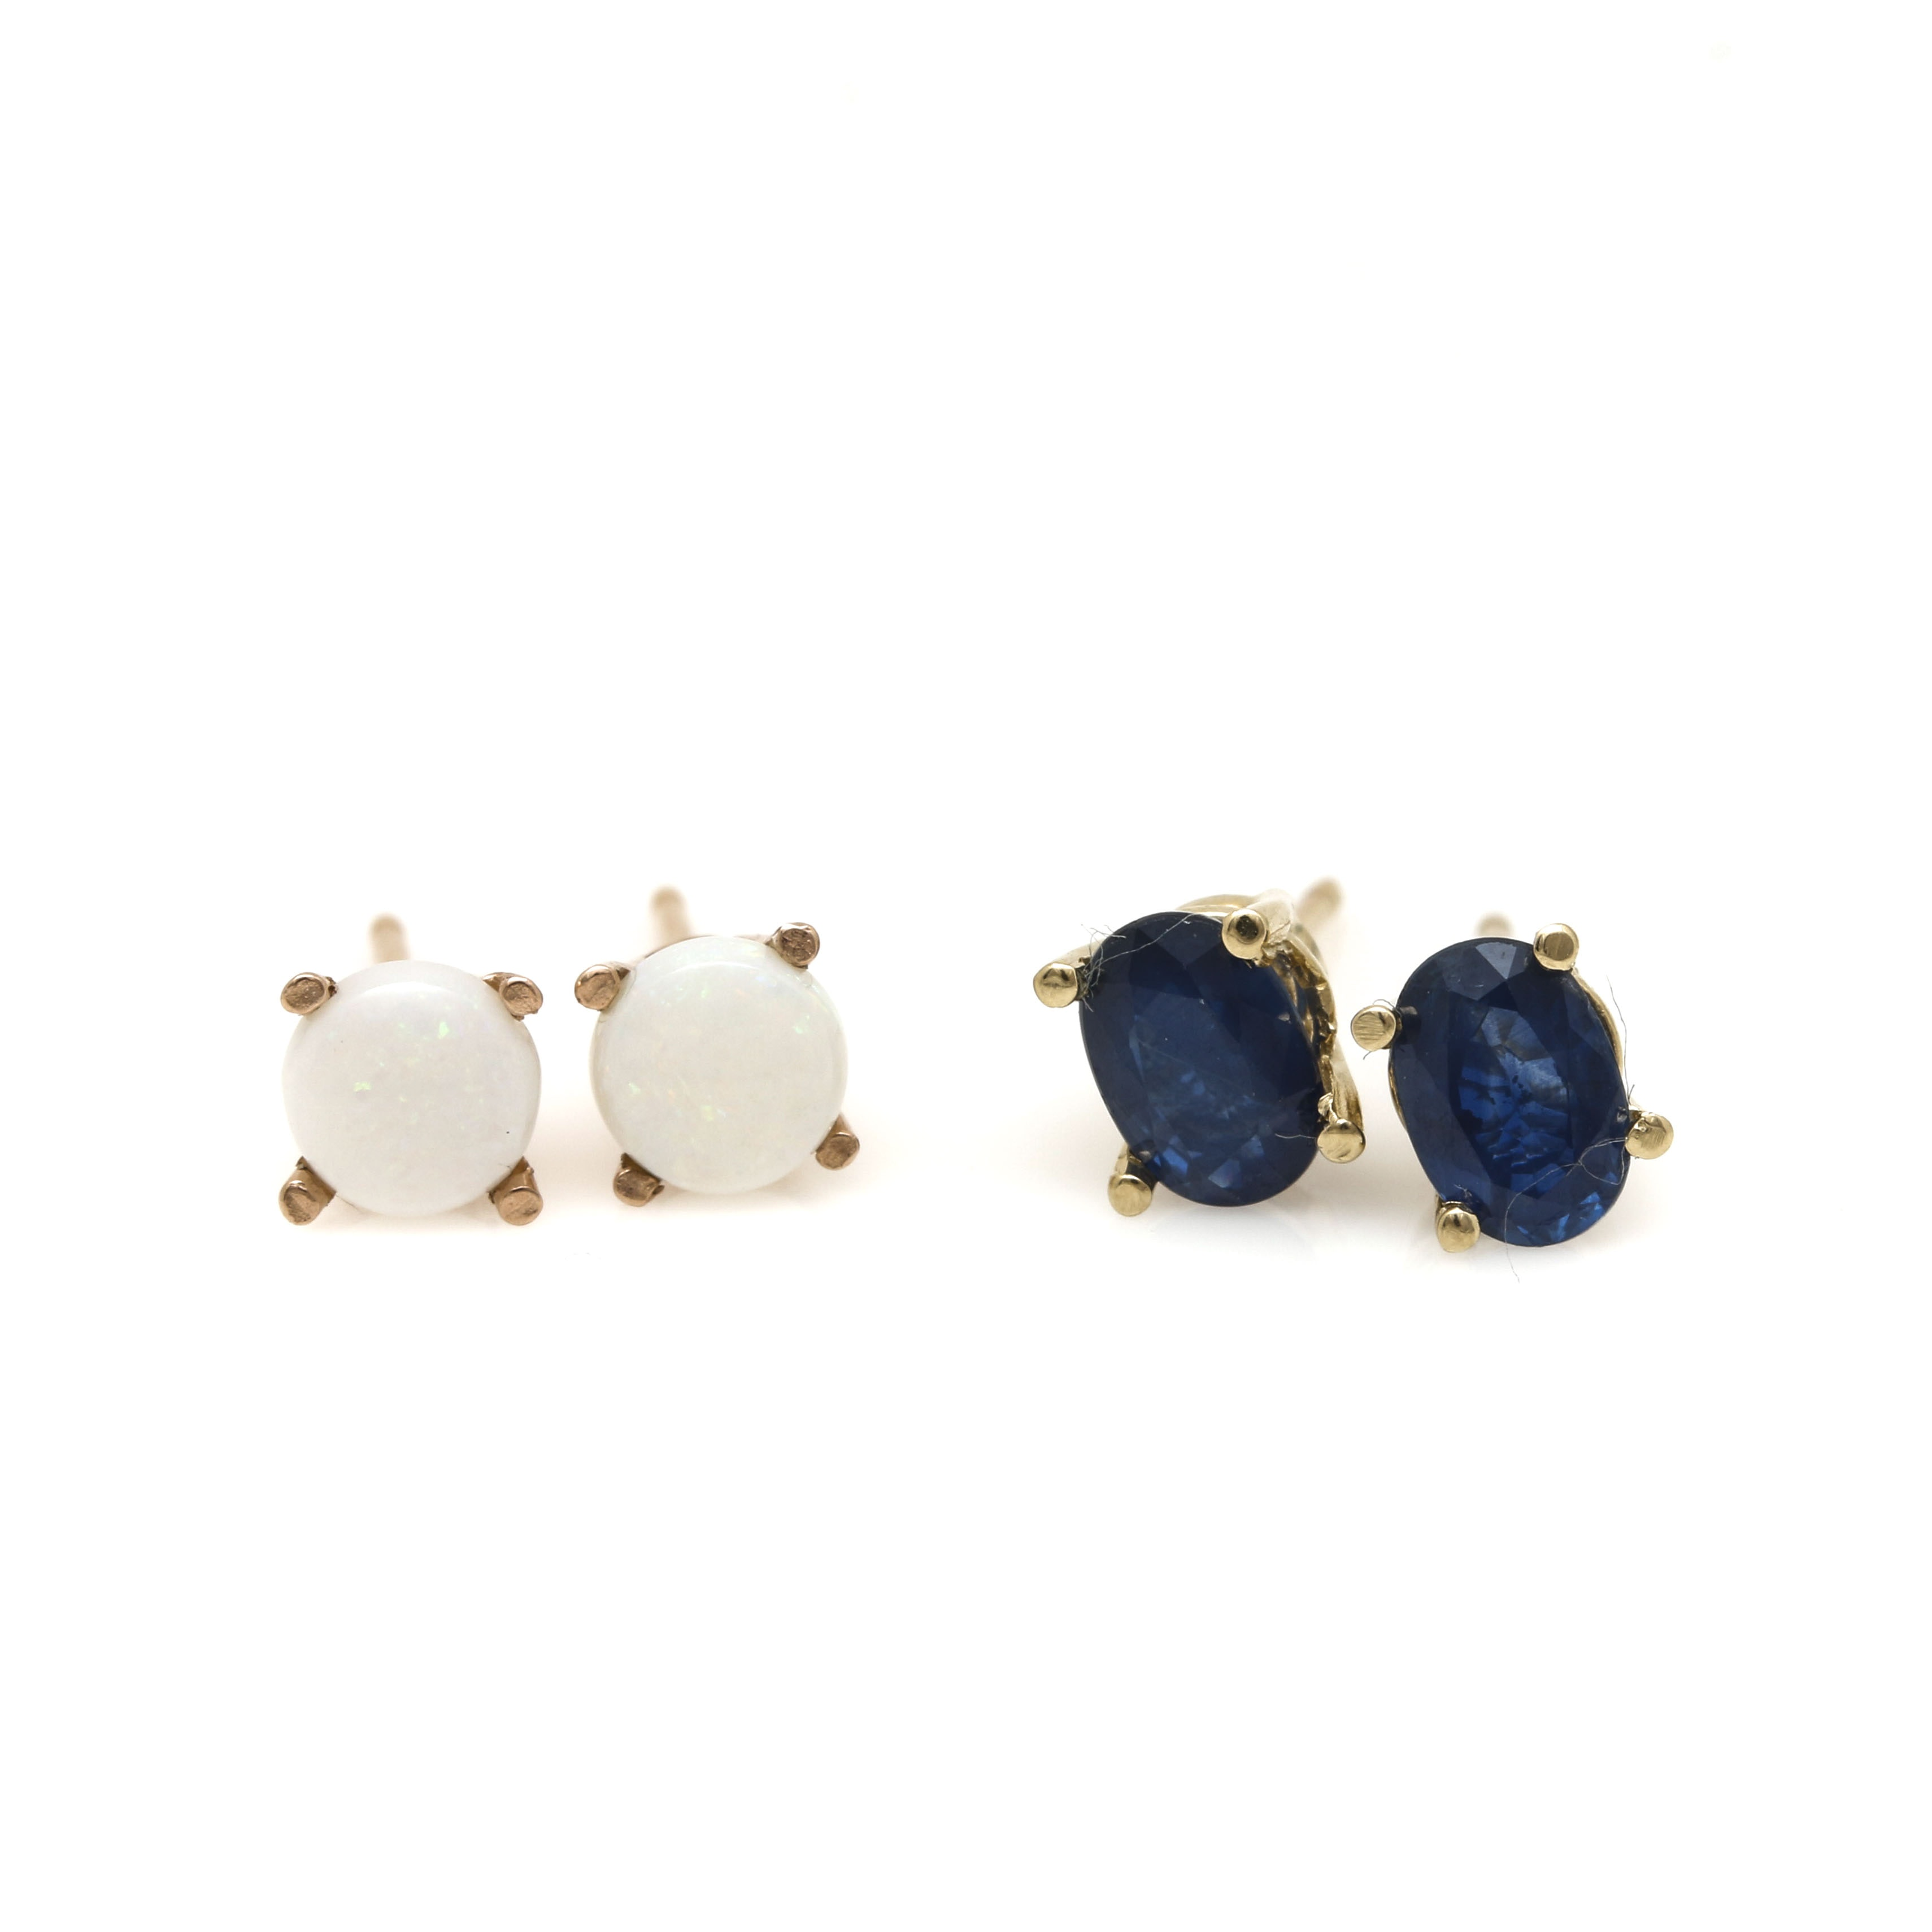 14K Yellow and Rose Gold Gemstone Stud Earrings